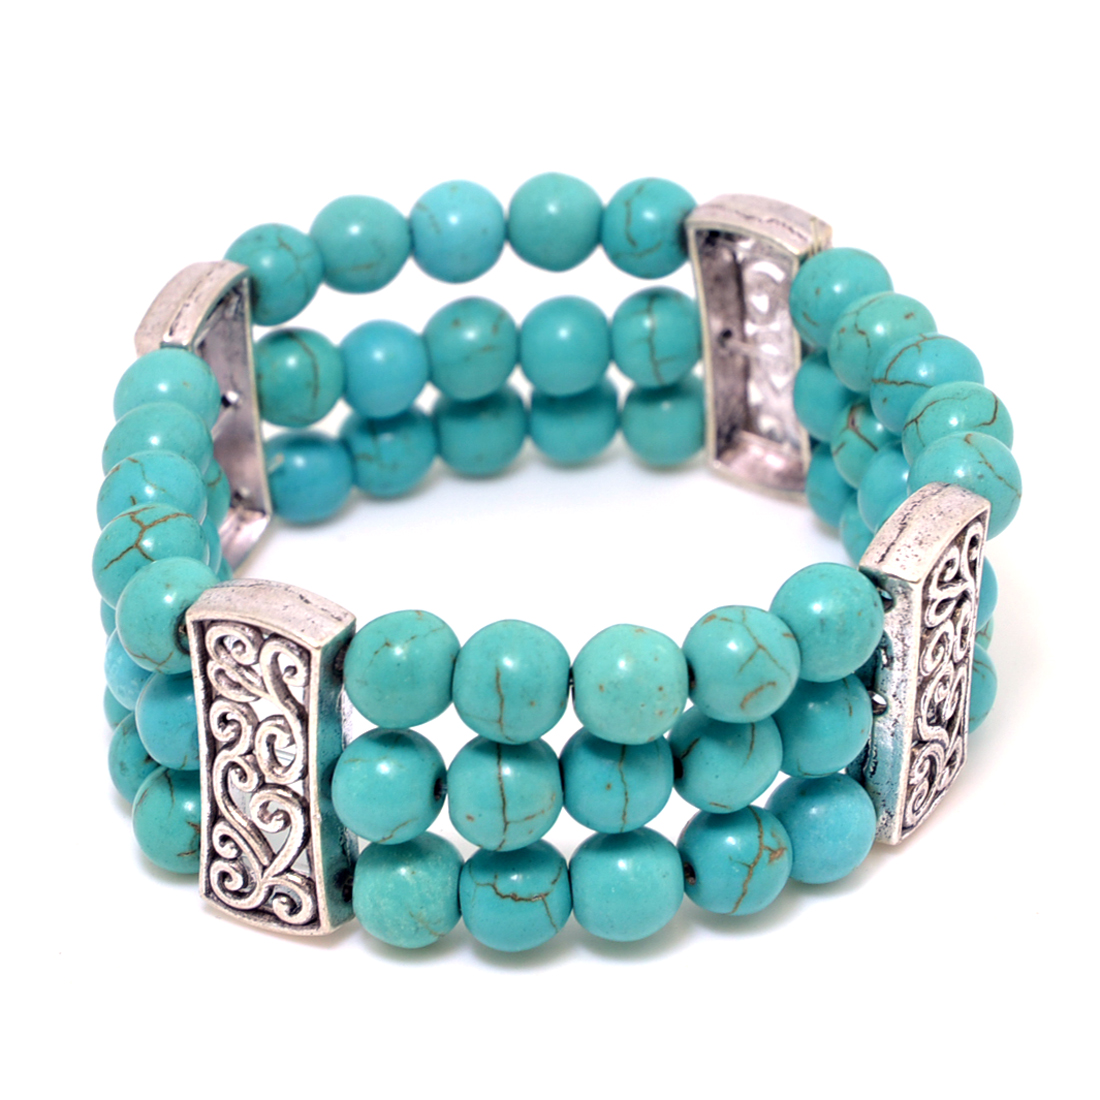 3-Strand Turquoise Bracelet with Elastic Band